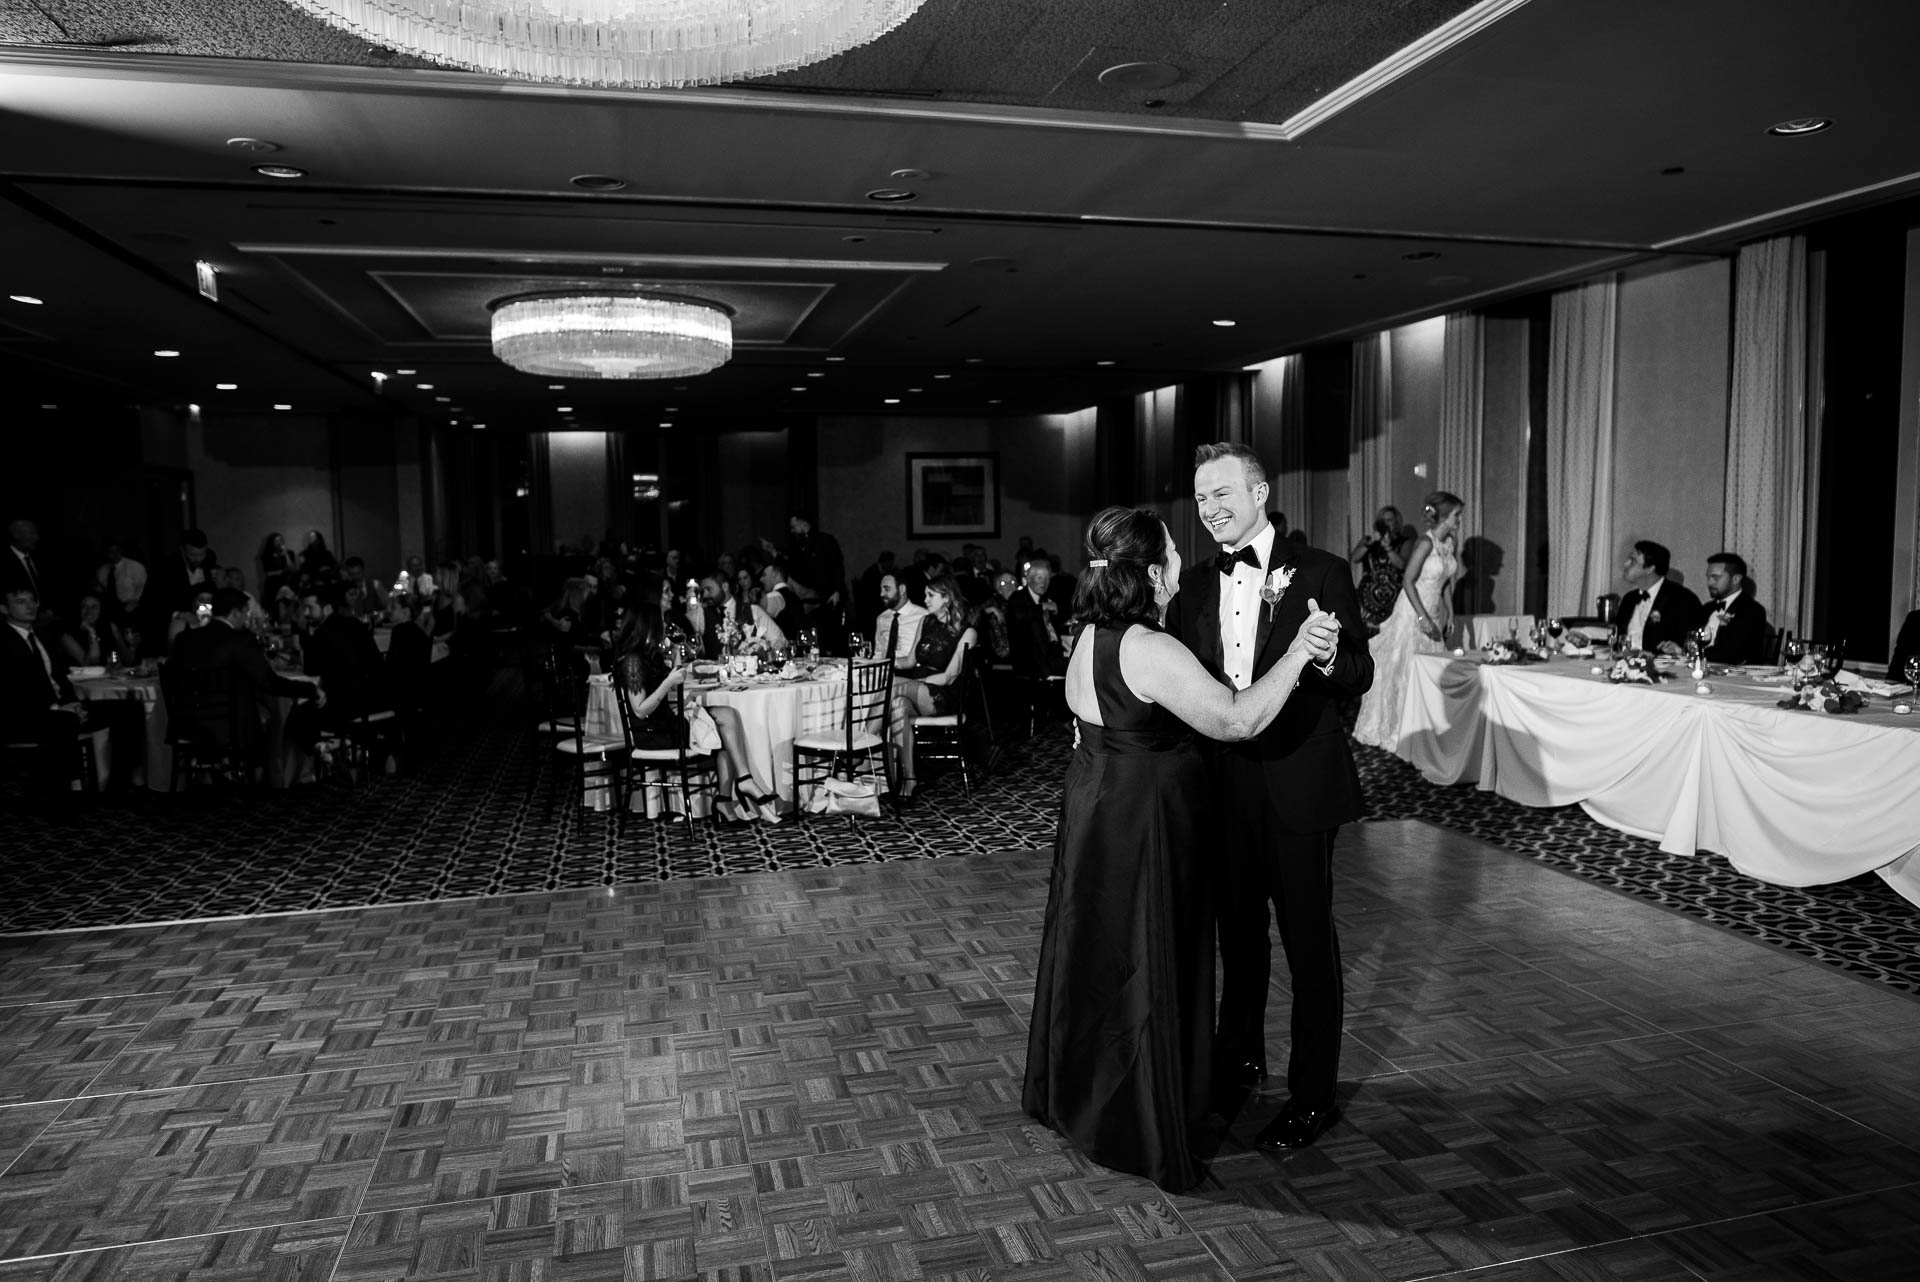 Mother and groom dance during their wedding reception at the Mid America Club in Chicago.